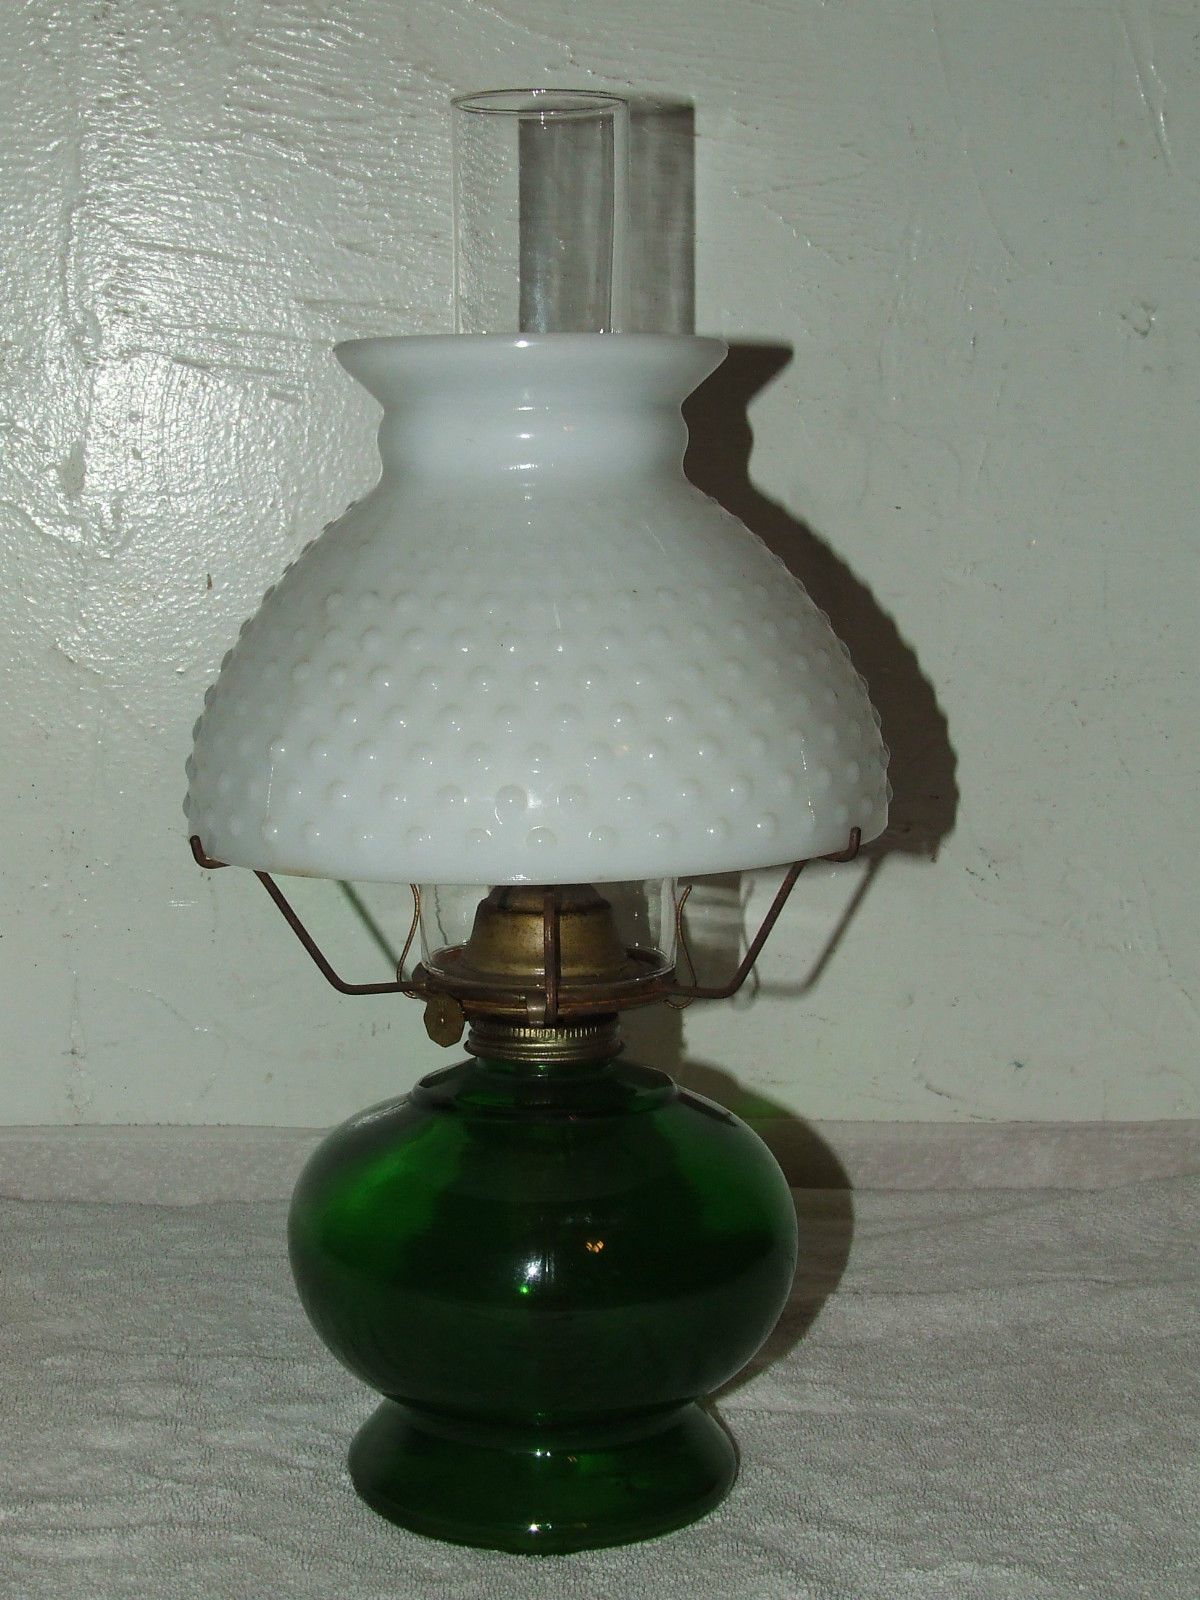 Rare antique emerald green glass oil lamp with milk glass shade rare antique emerald green glass oil lamp with milk glass shade pa mfg co usa mozeypictures Image collections